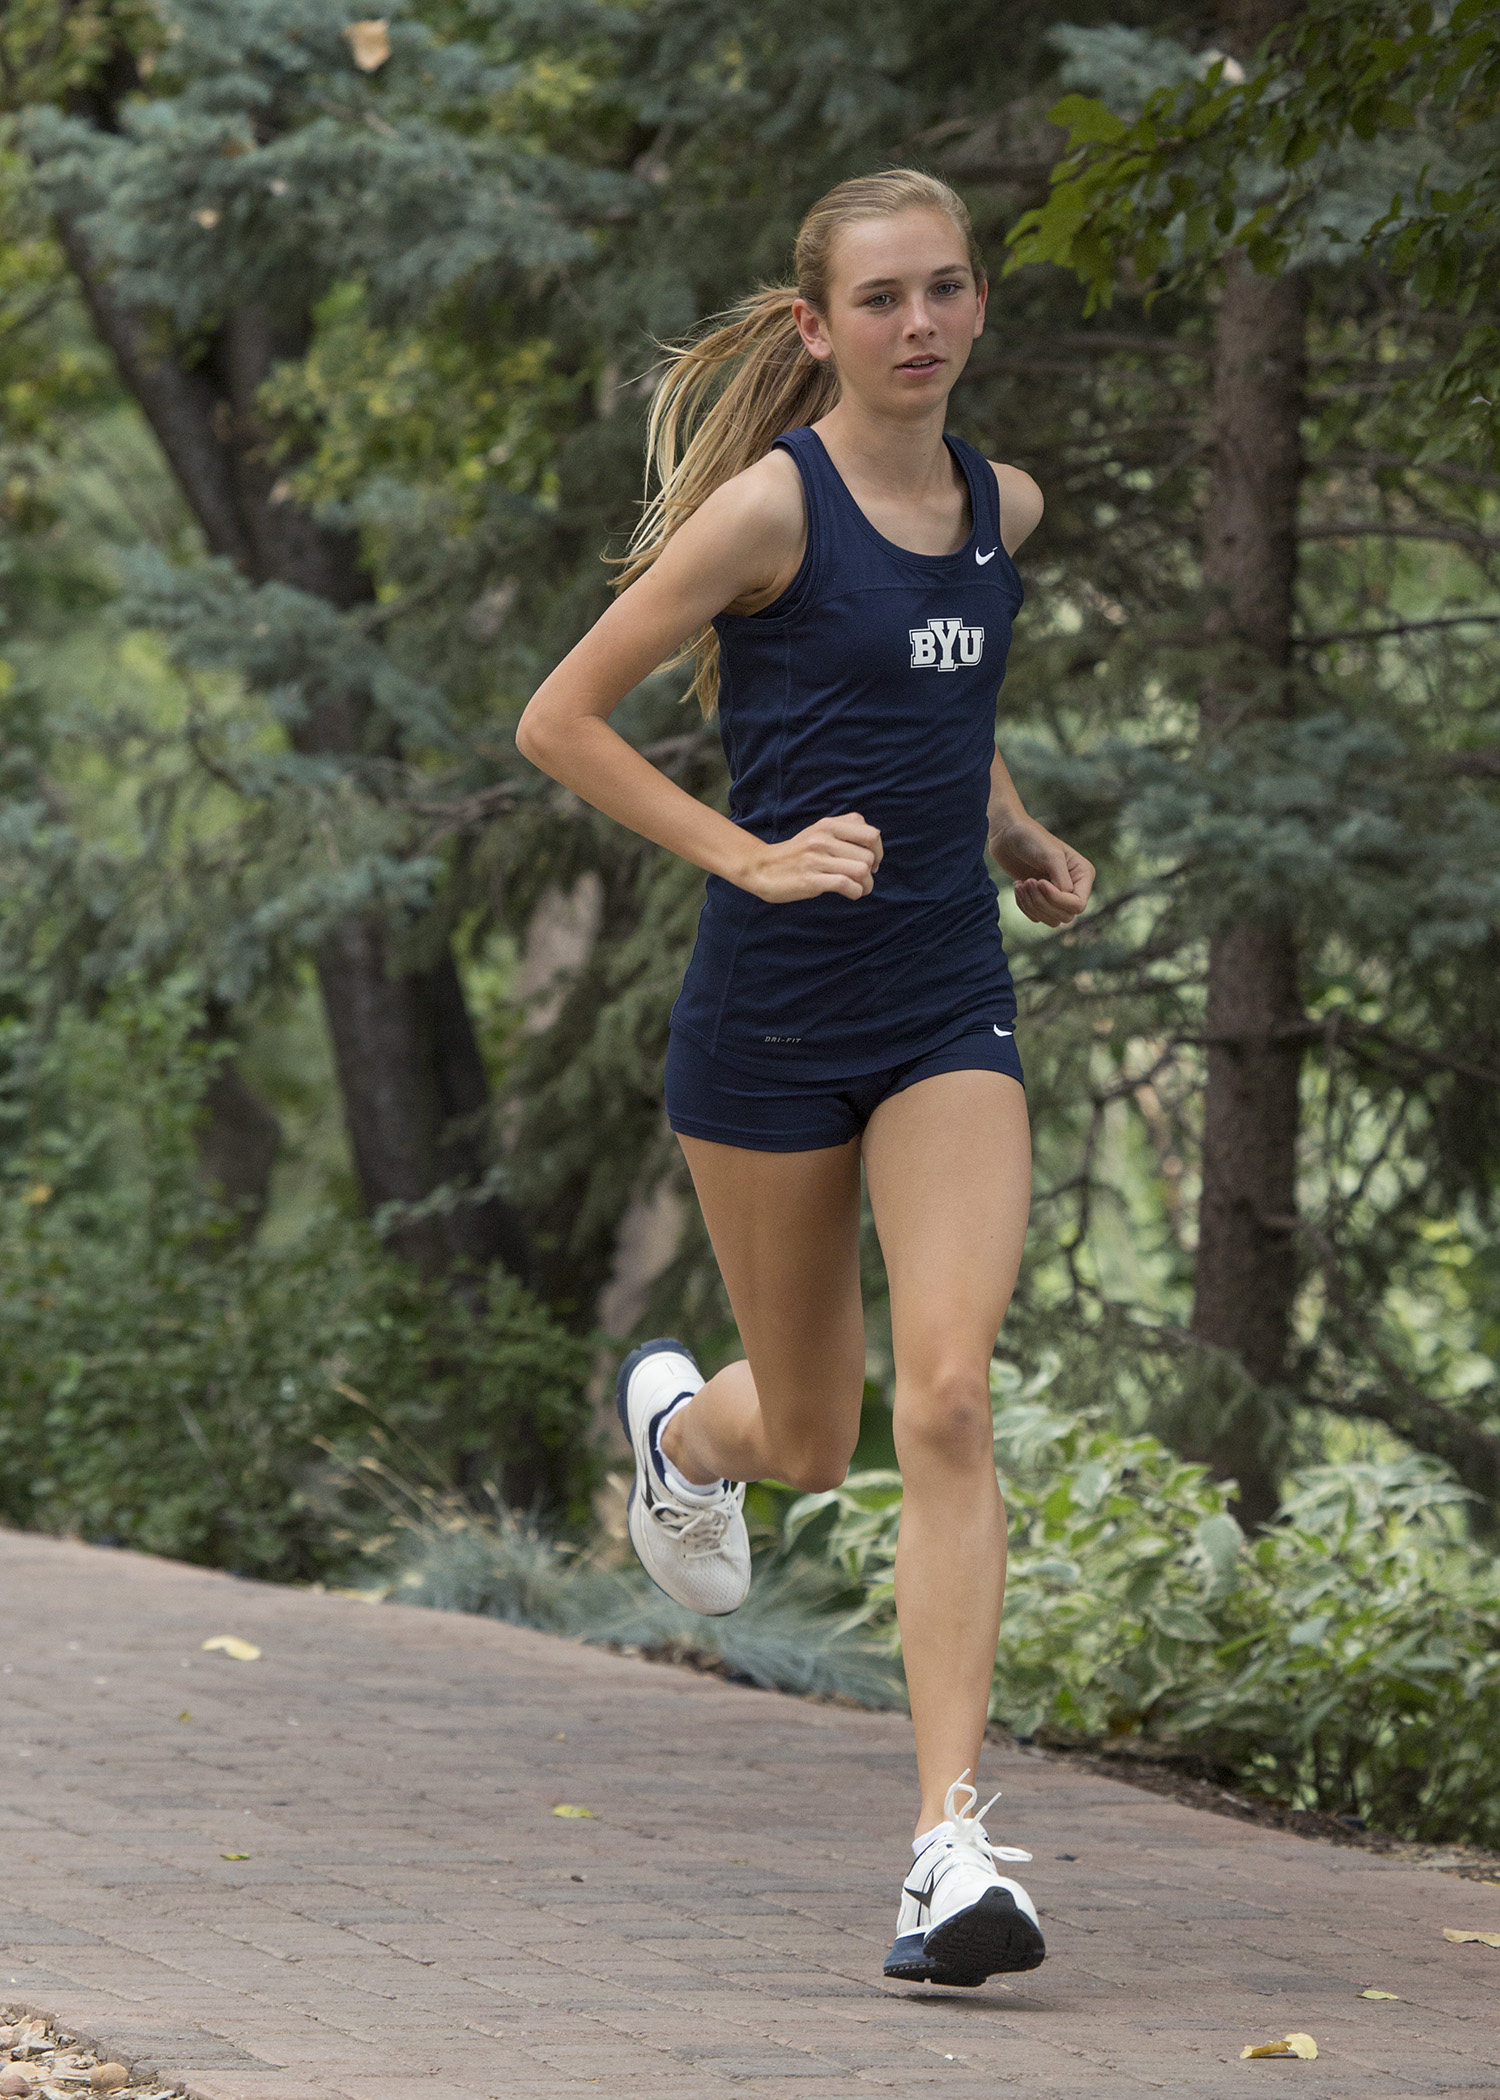 Danica Wyson runs at a cross-country meet during the 2012 season. Wyson is currently rehabilitating a shin injury, but has stayed involved with the team and plans to return in time for next season. Photo courtesy Mark Philbrick/ BYU Photo